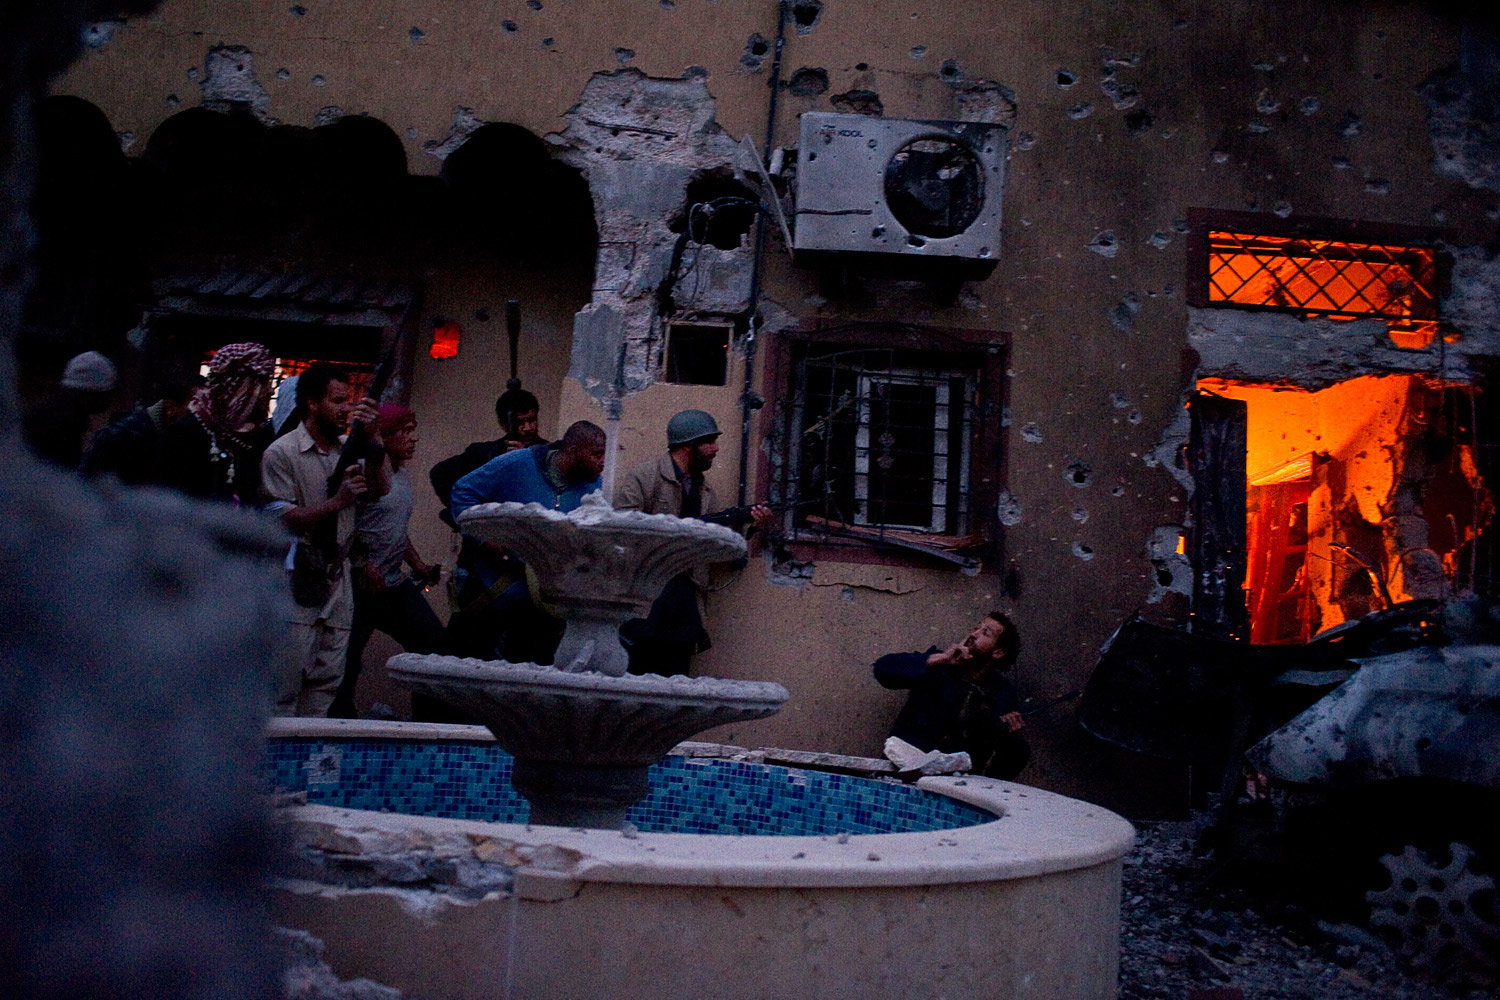 April 24, 2011. Rebels invade a house that served as a base for pro-government forces in the western city of Misrata, Libya.